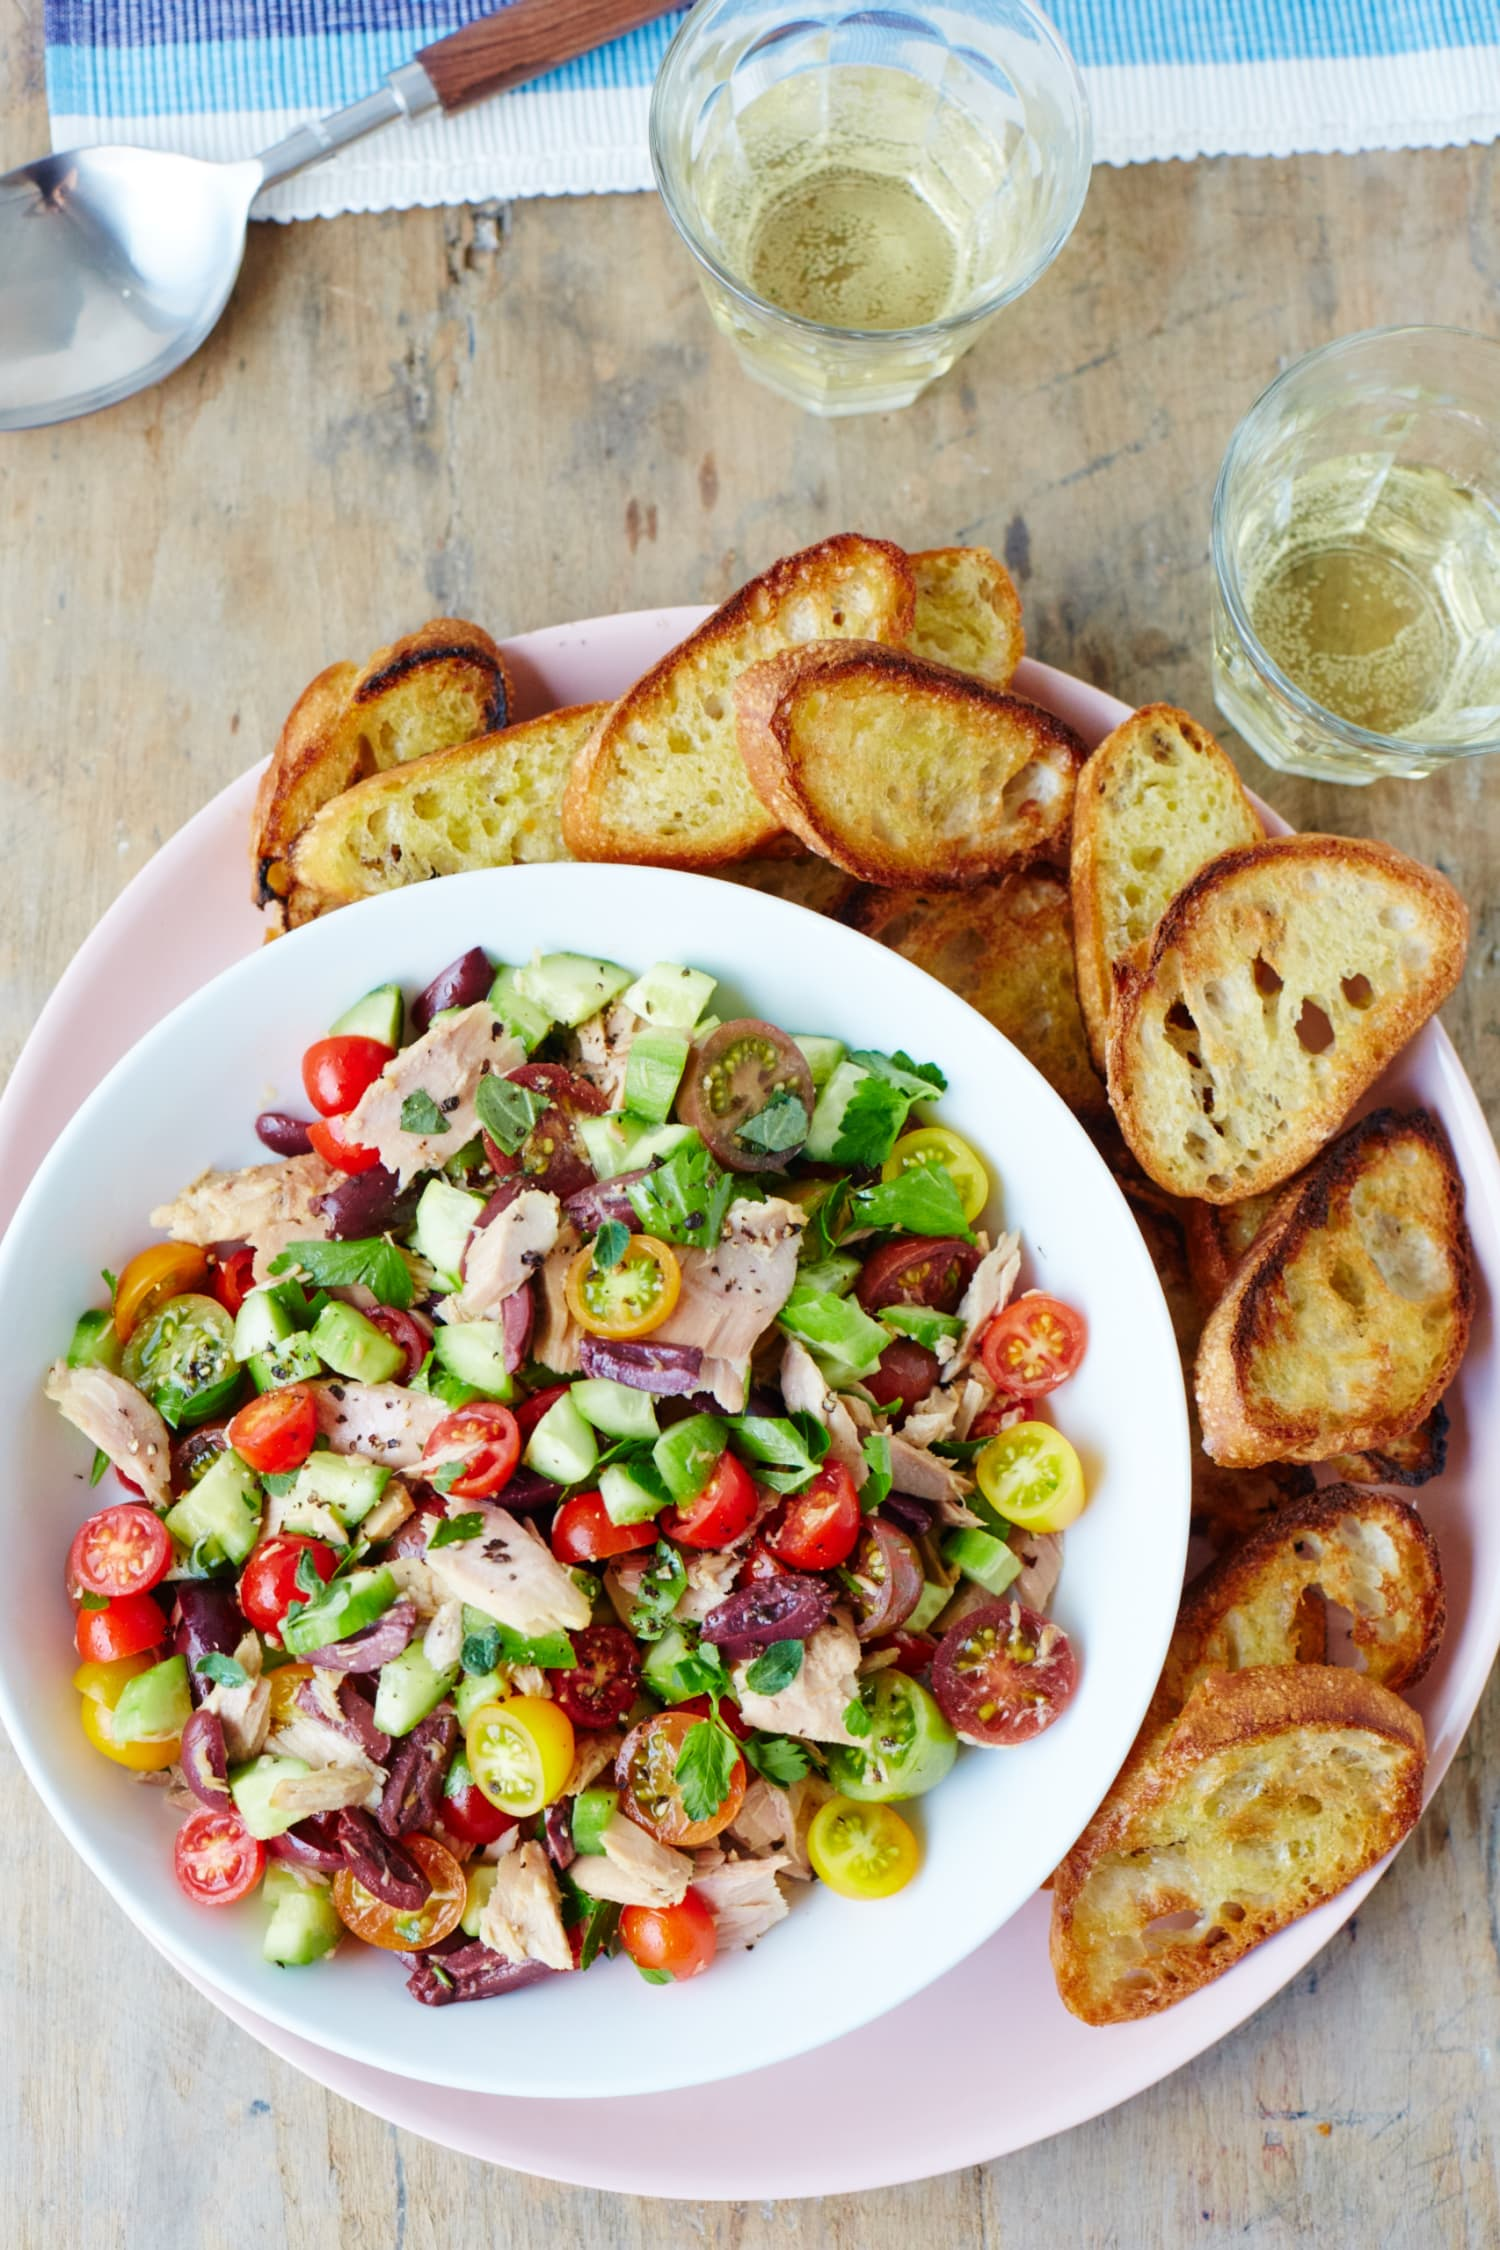 10 Tasty Ways to Turn Canned Tuna Into a Meal